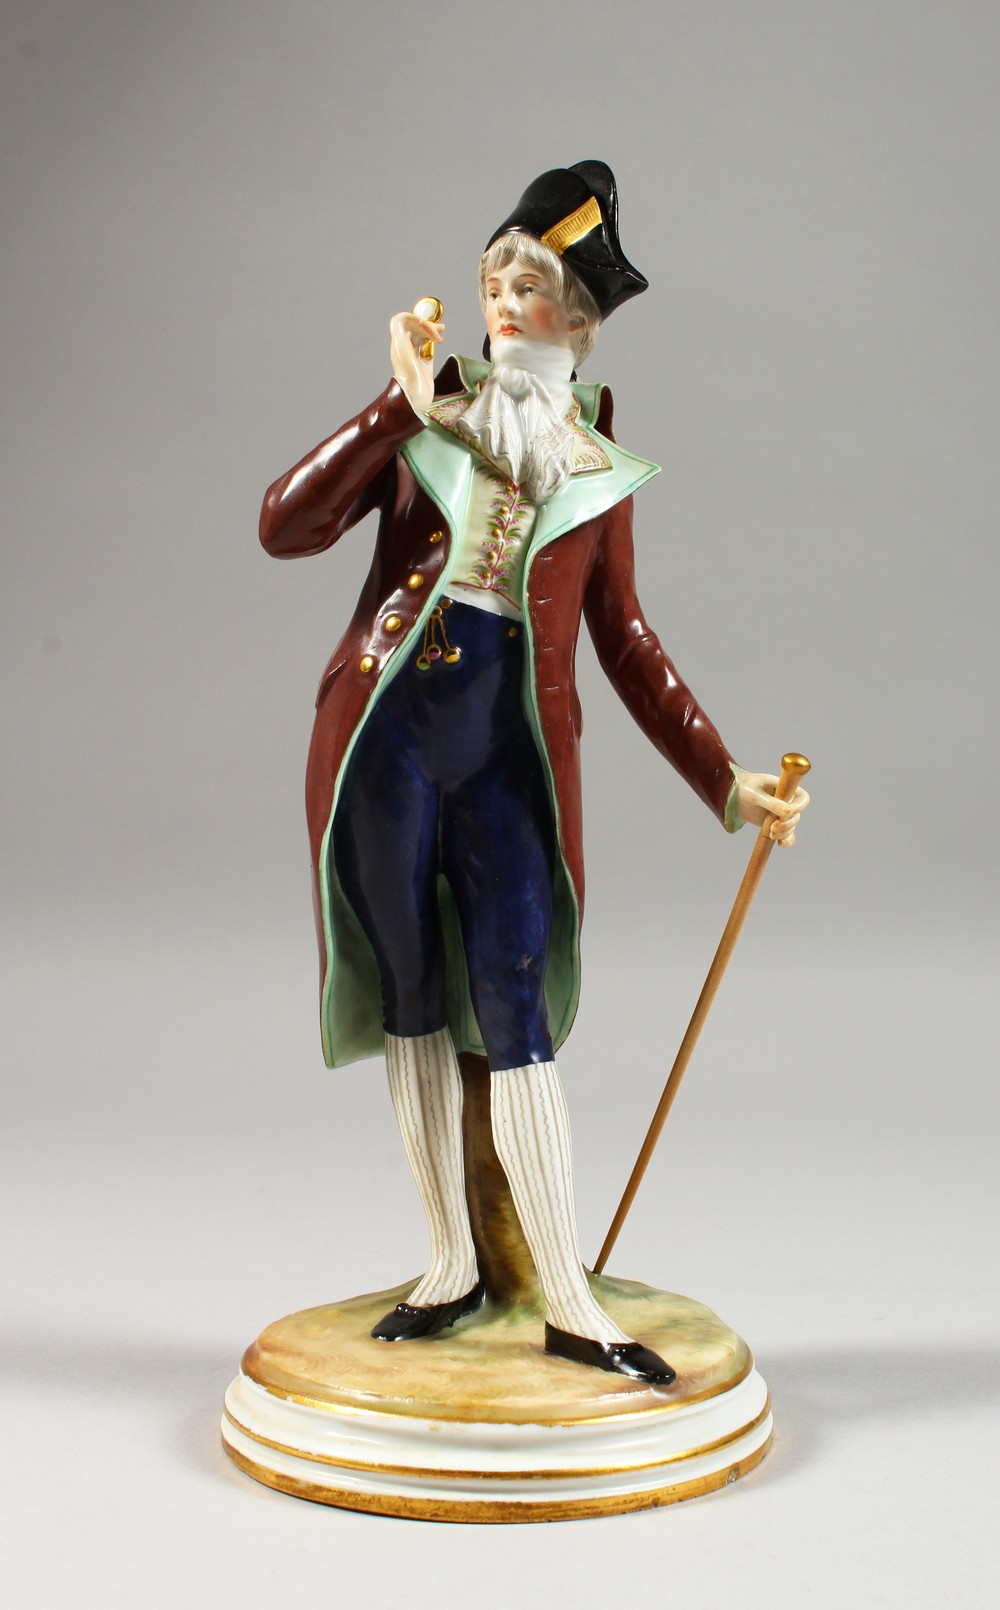 A MEISSEN FIGURE OF A DANDY, standing wearing a tailcoat, a stick in his left hand, a monocle in his